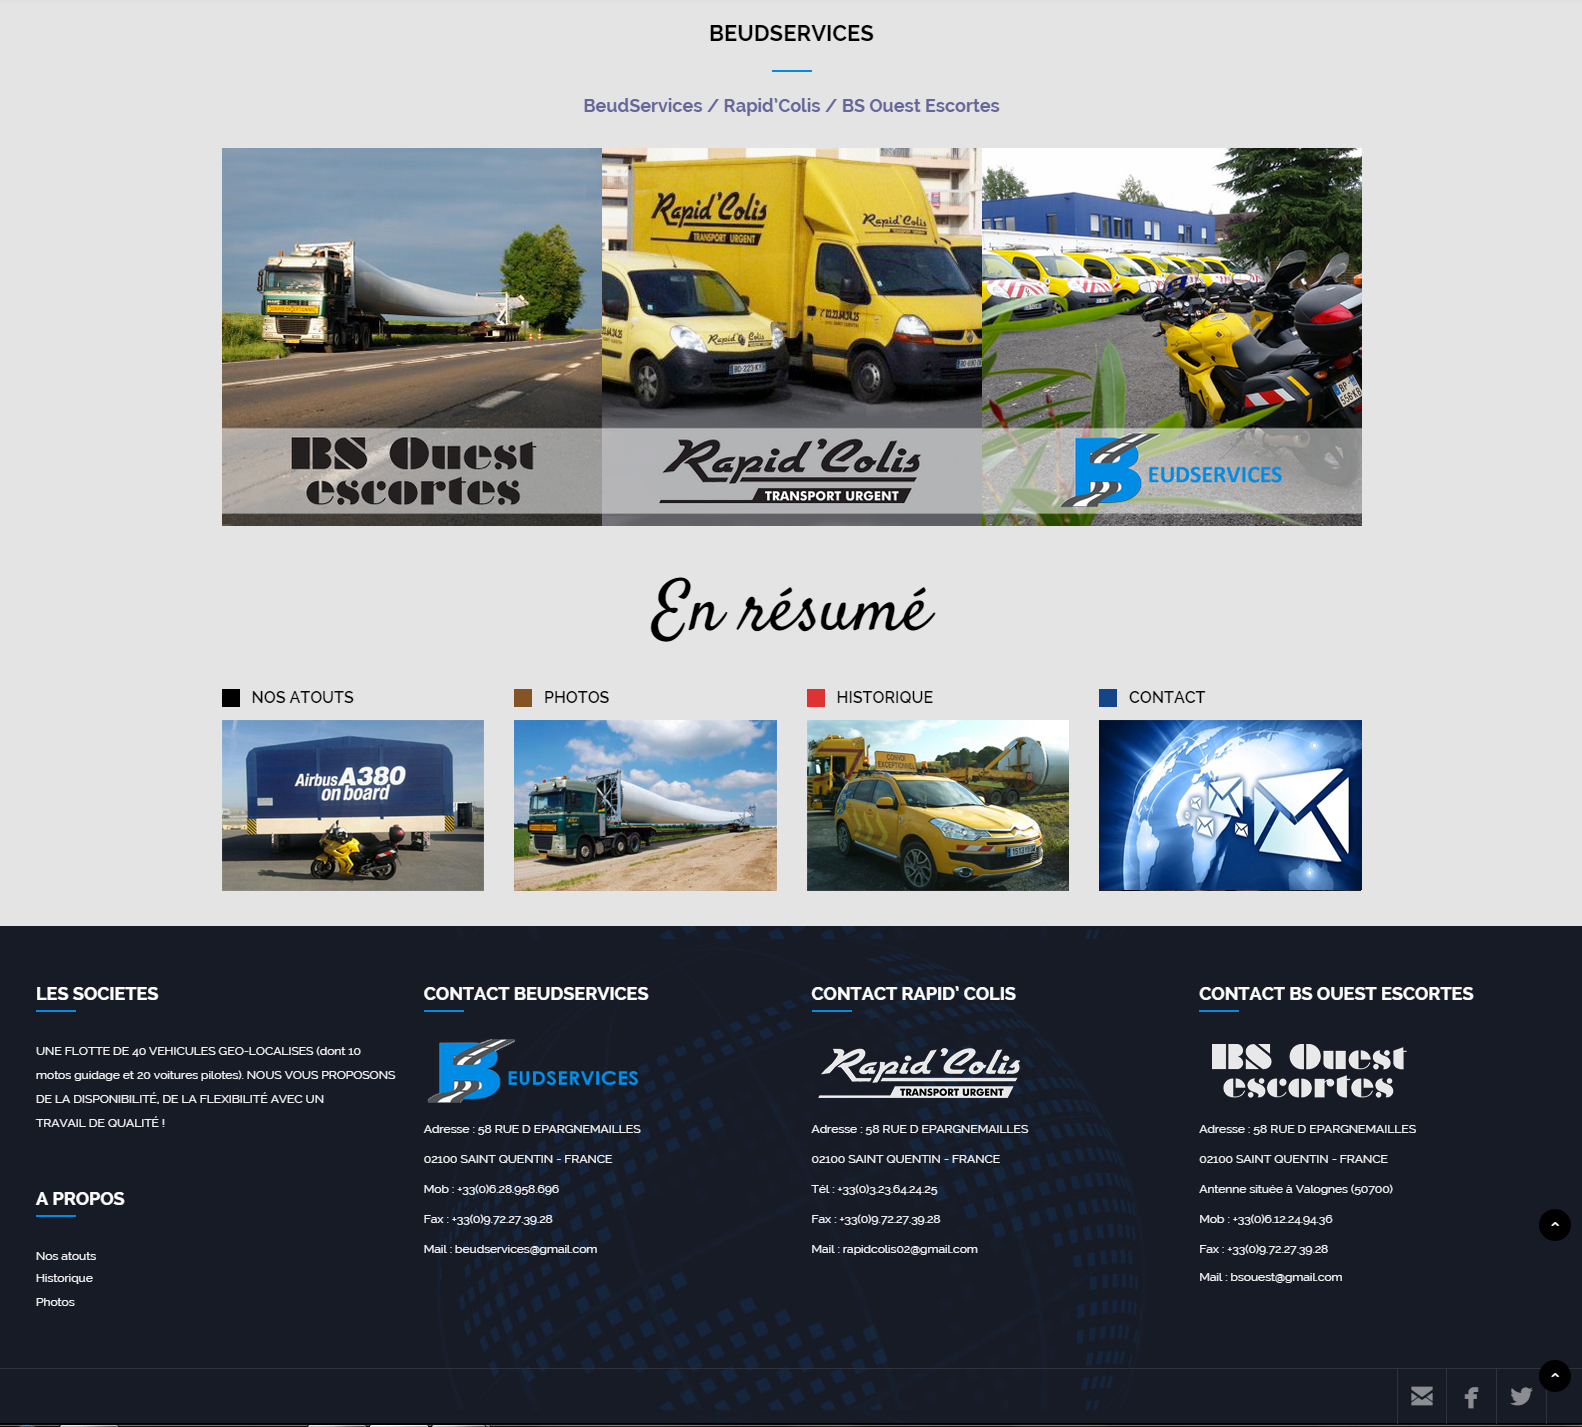 beudservices5